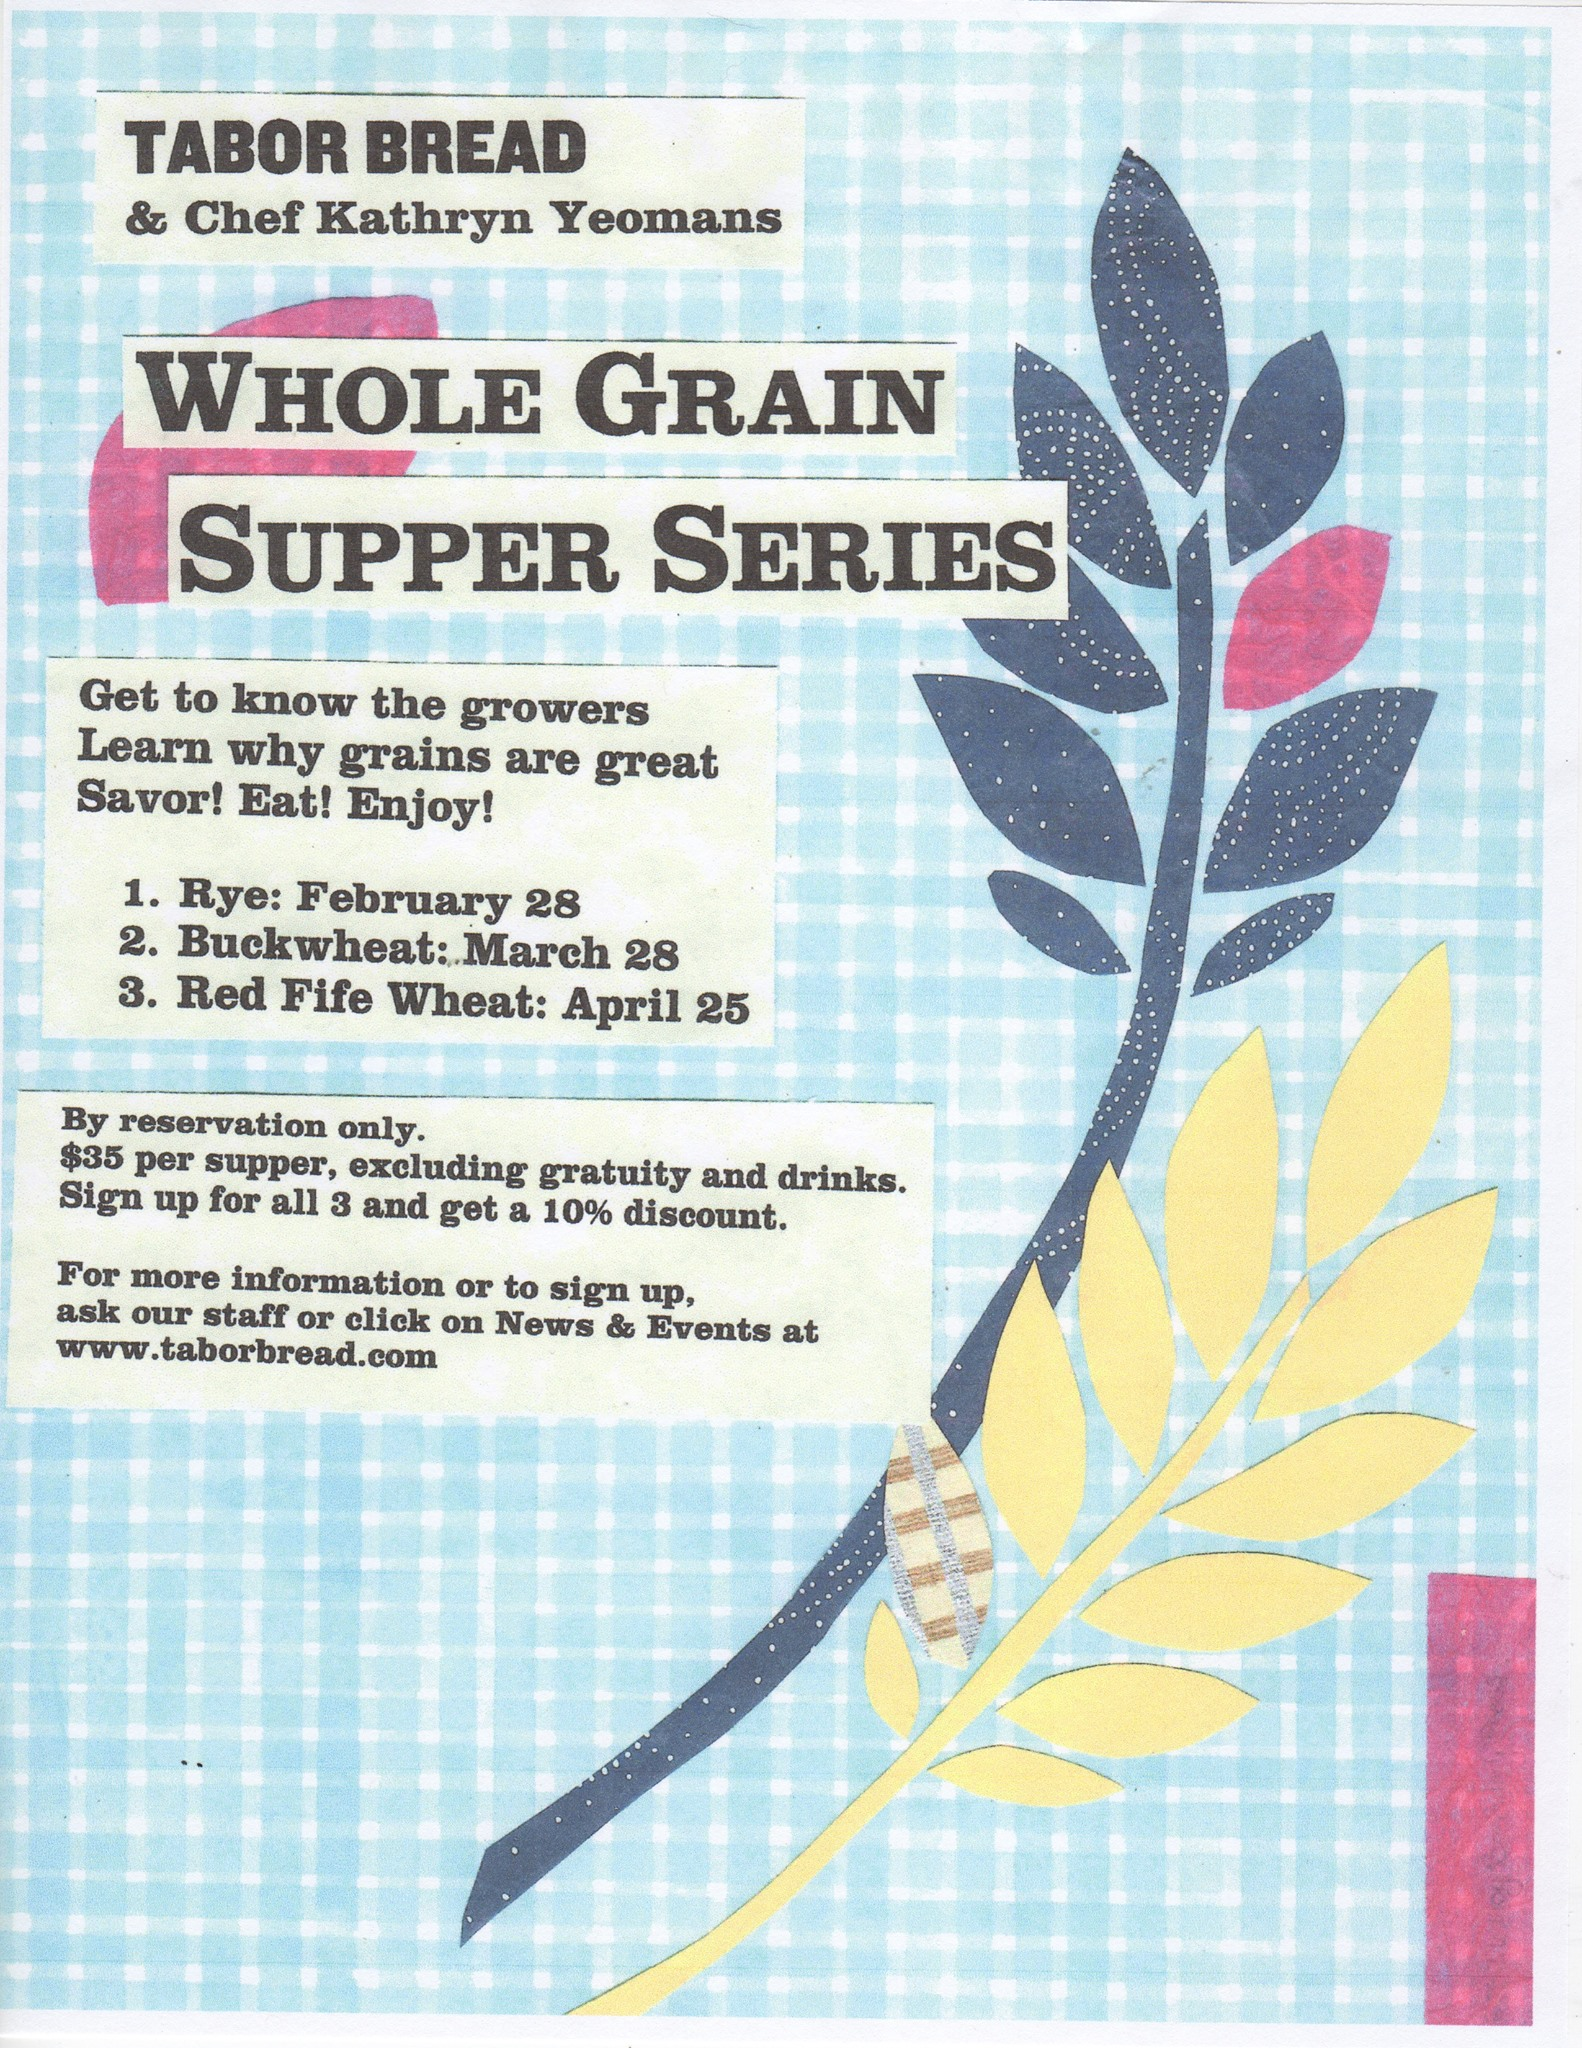 Whole Grain Supper Series